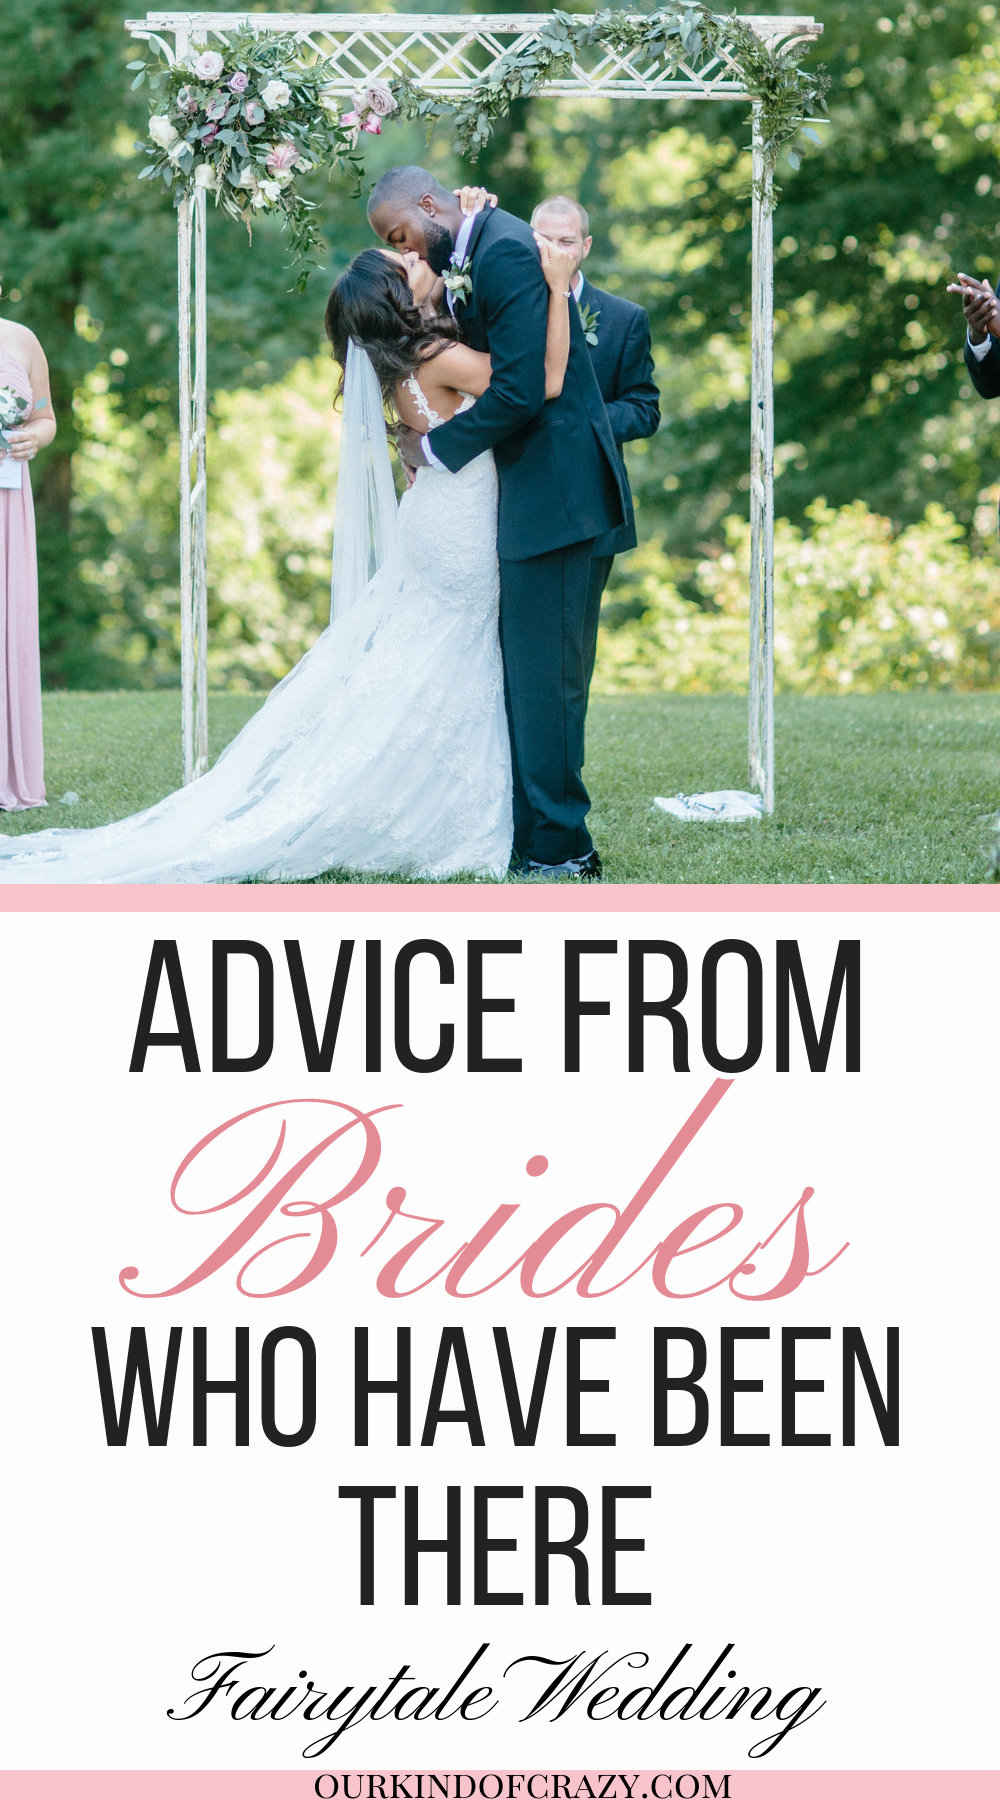 Wedding Planning Advice from Brides Who have been there.